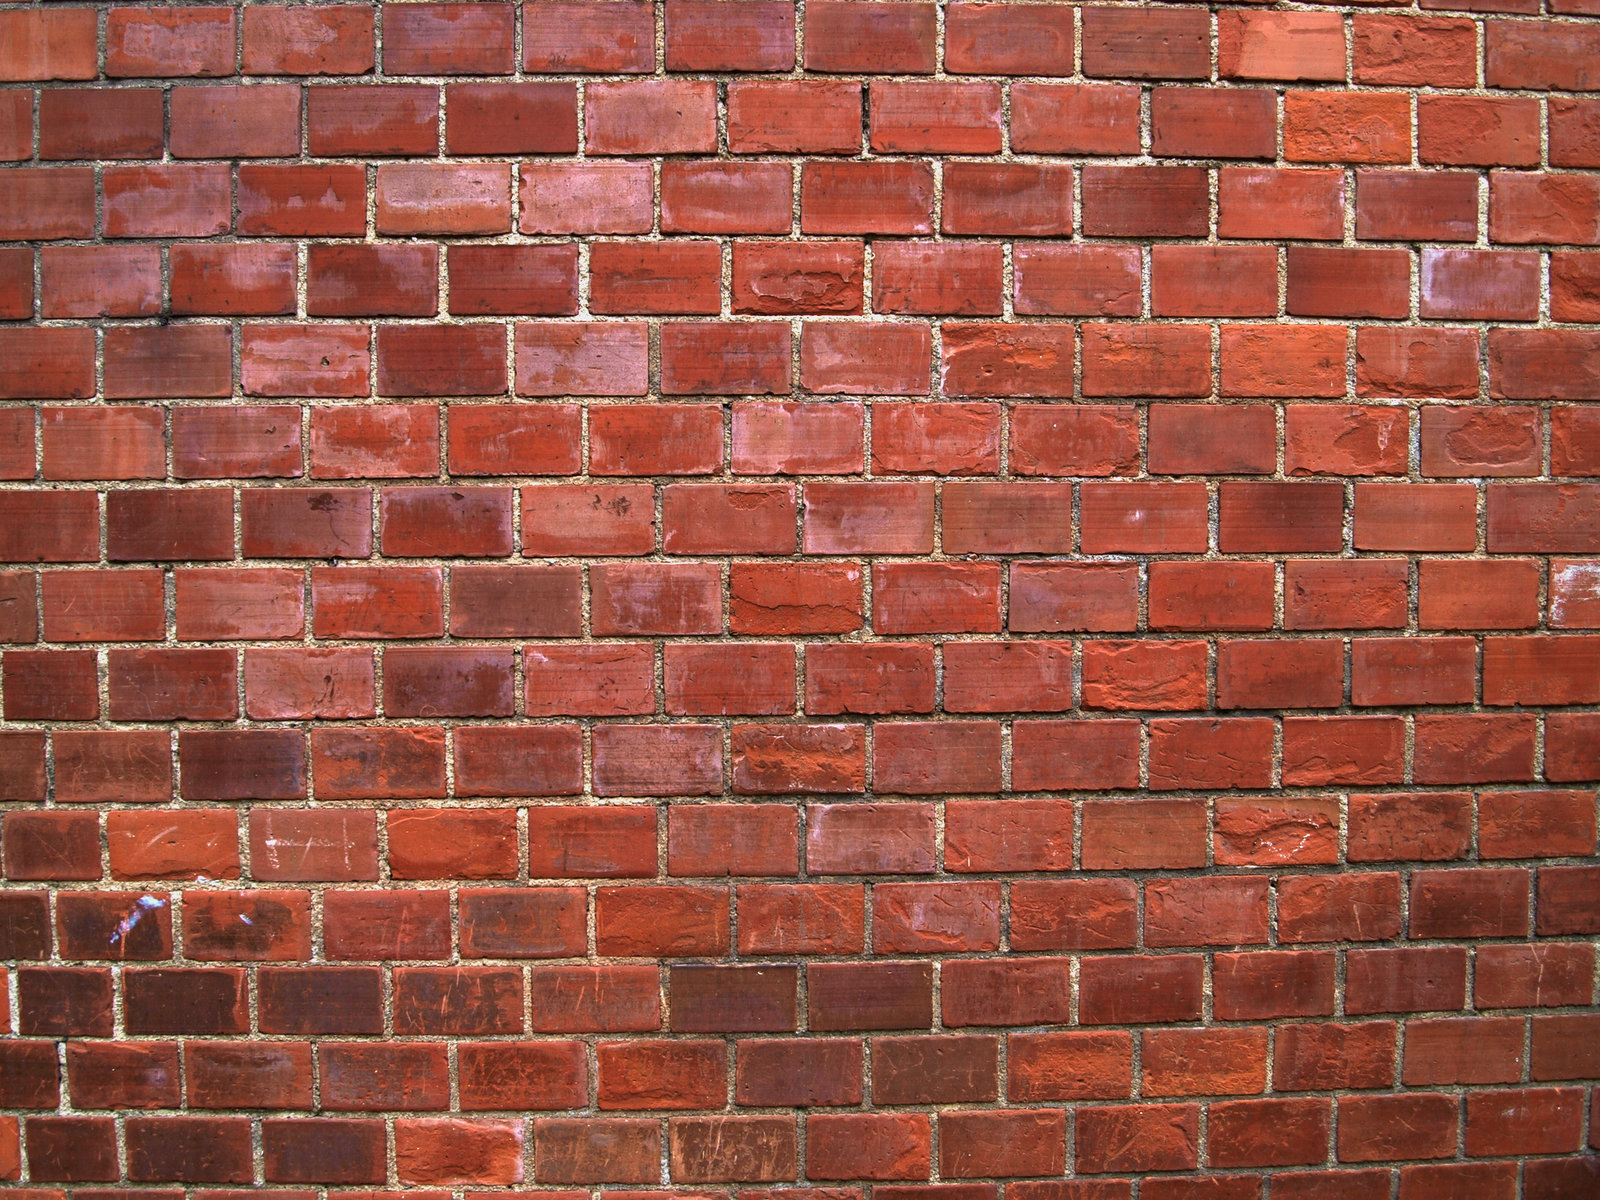 Png Format Images Of Brick Texture image #23889